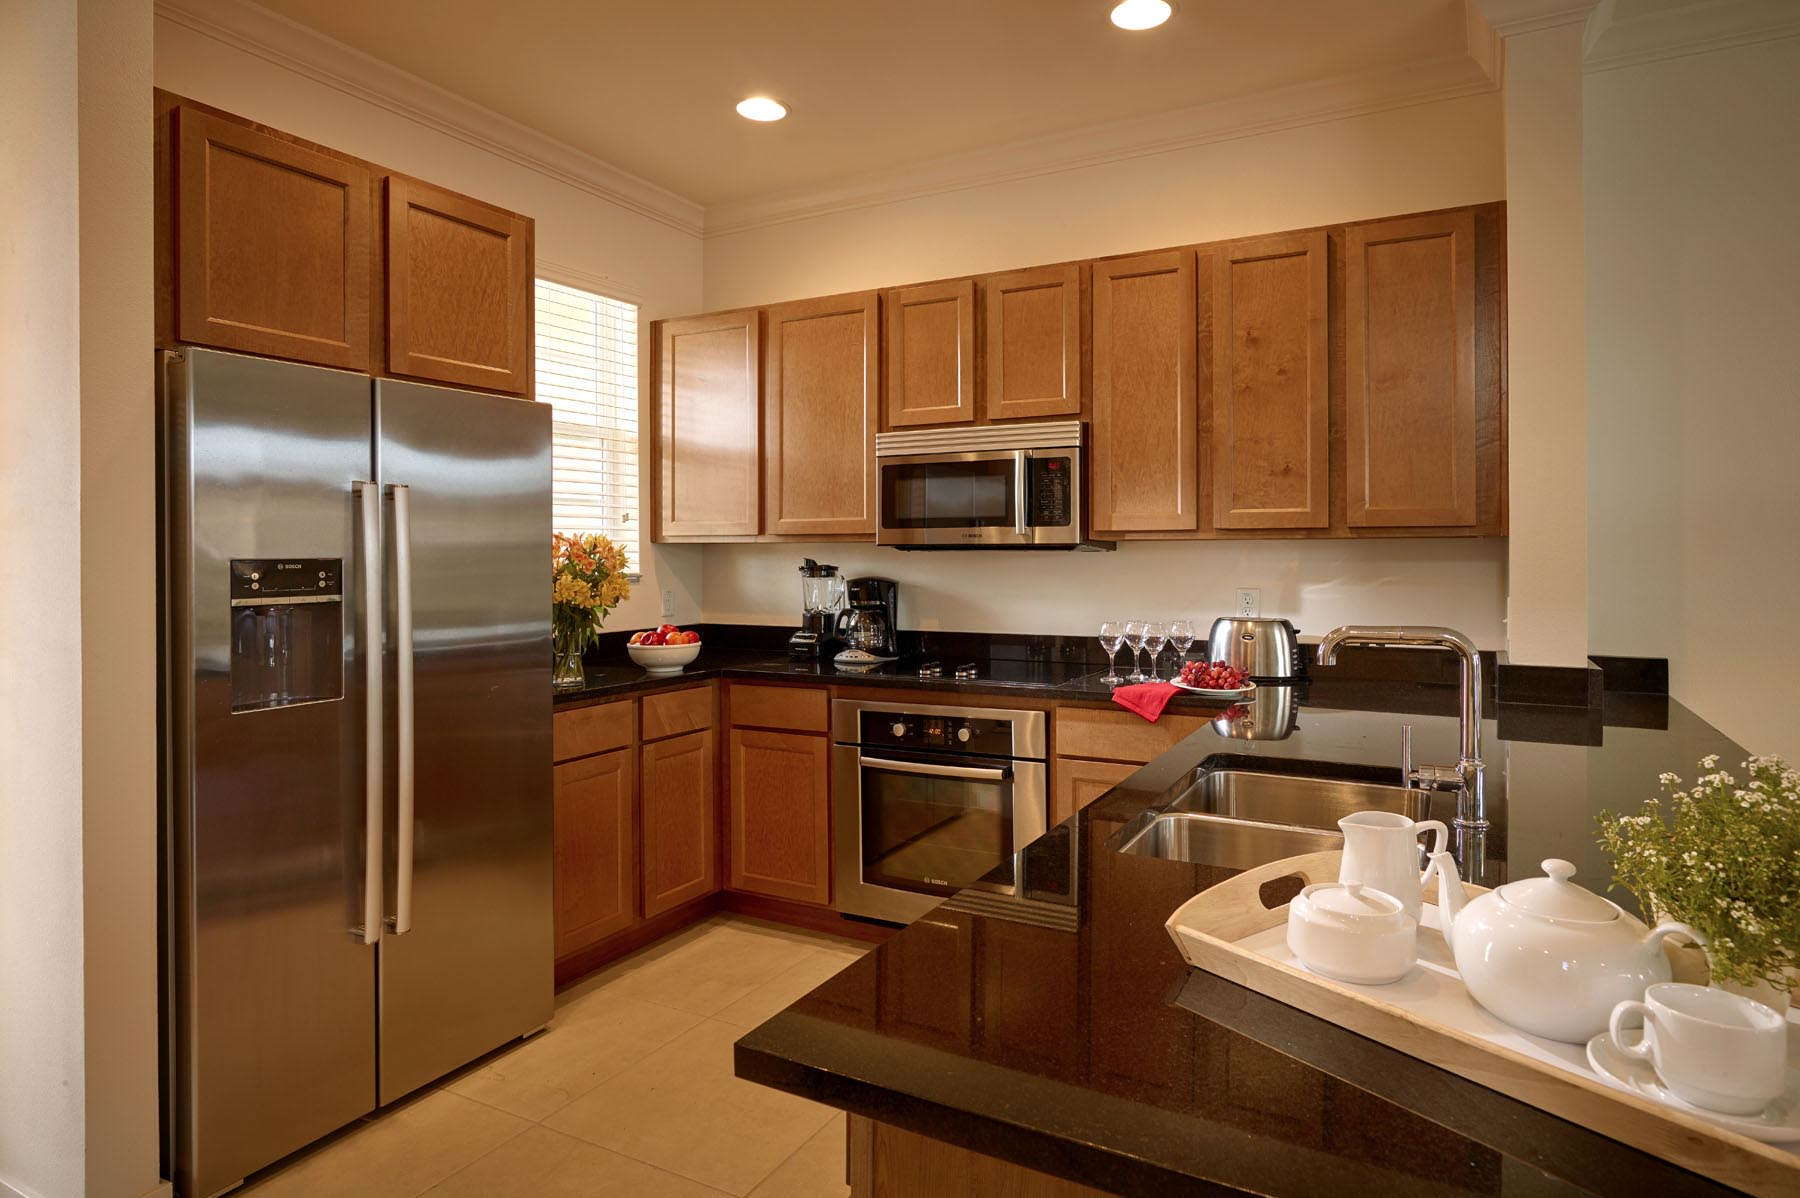 Clc Kitchens And Bedrooms Reviews